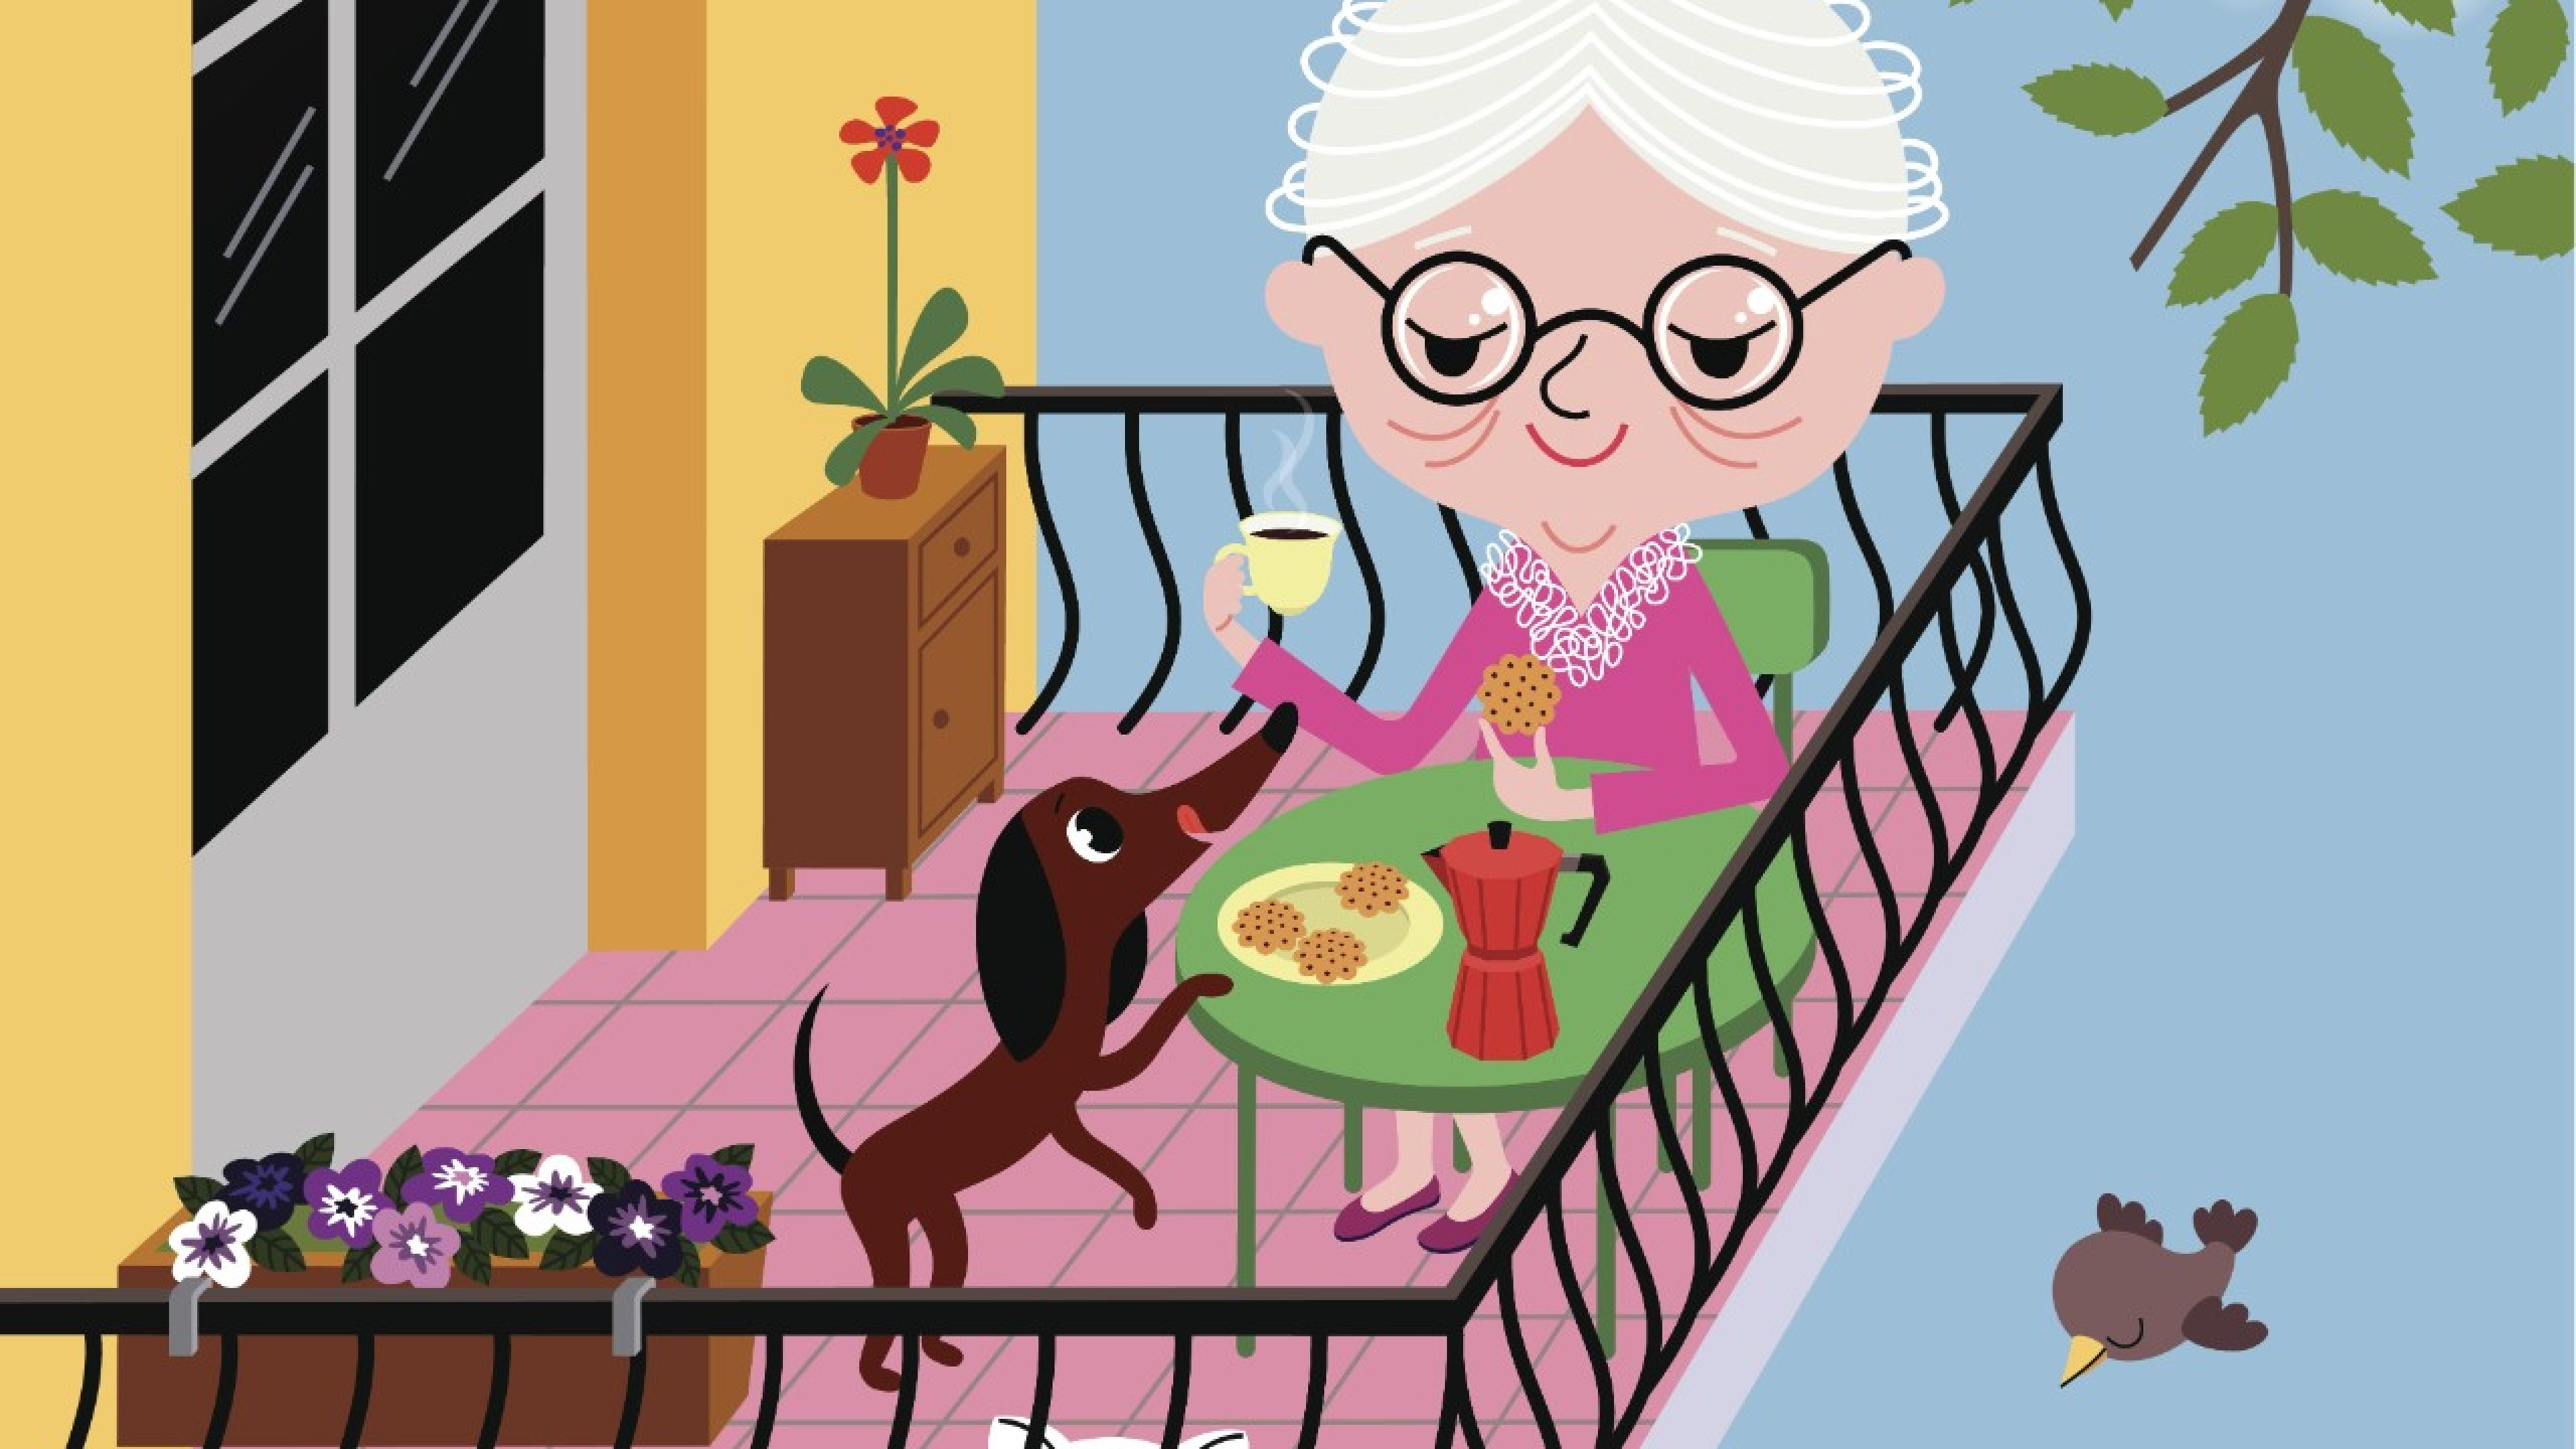 Little Old Lady with her Pets enjoying Summer on the Balcony.